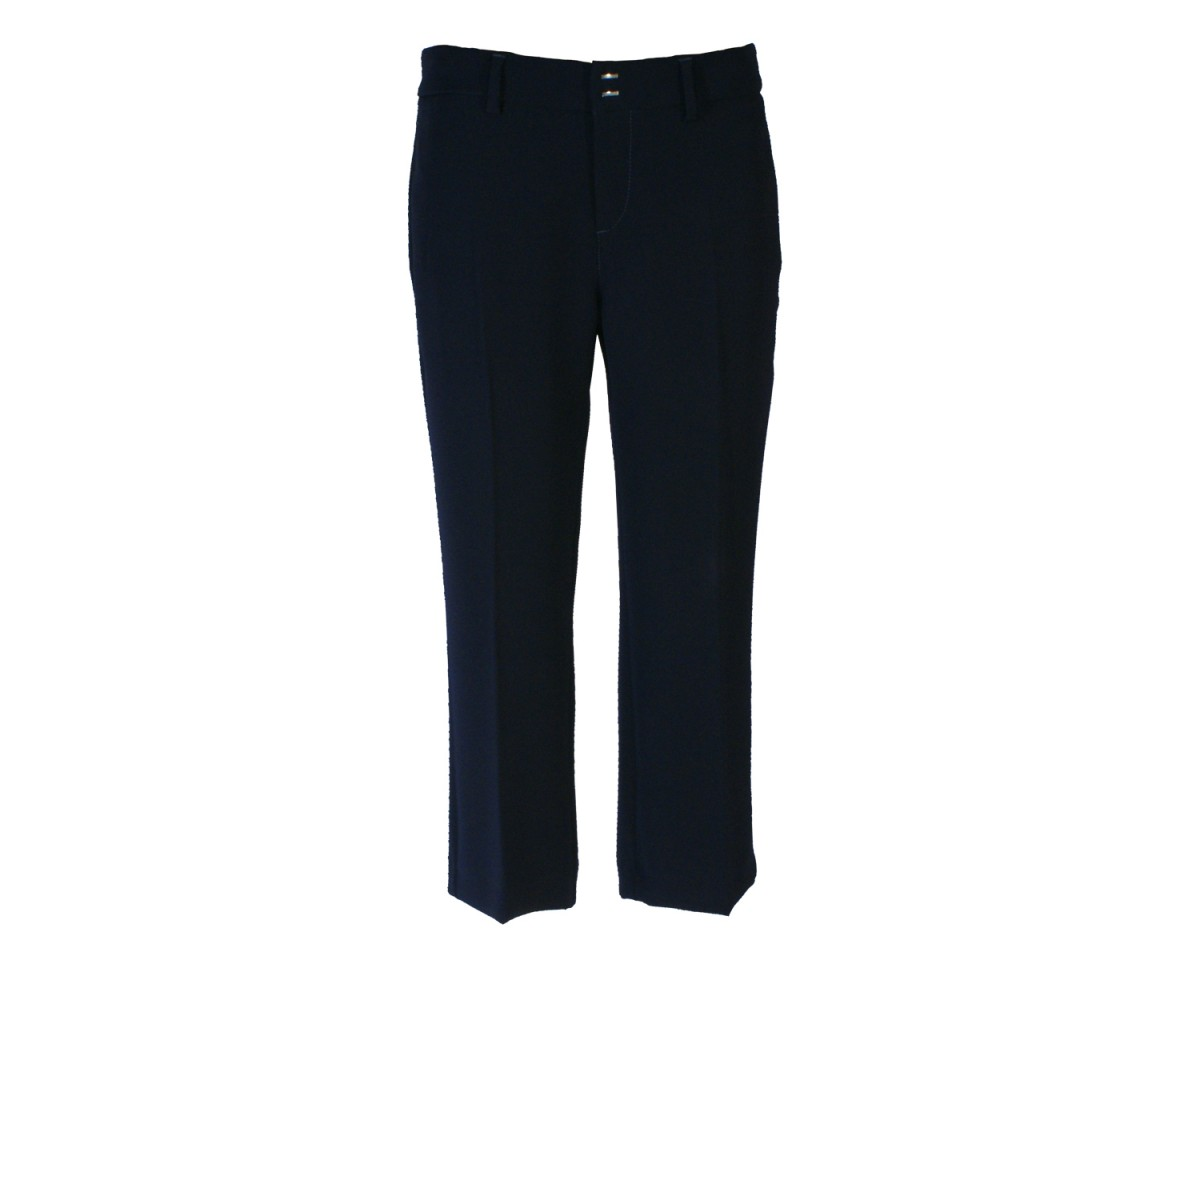 MAC Jeans Culotte Chic Midnight Blue 4607 0156 199-35